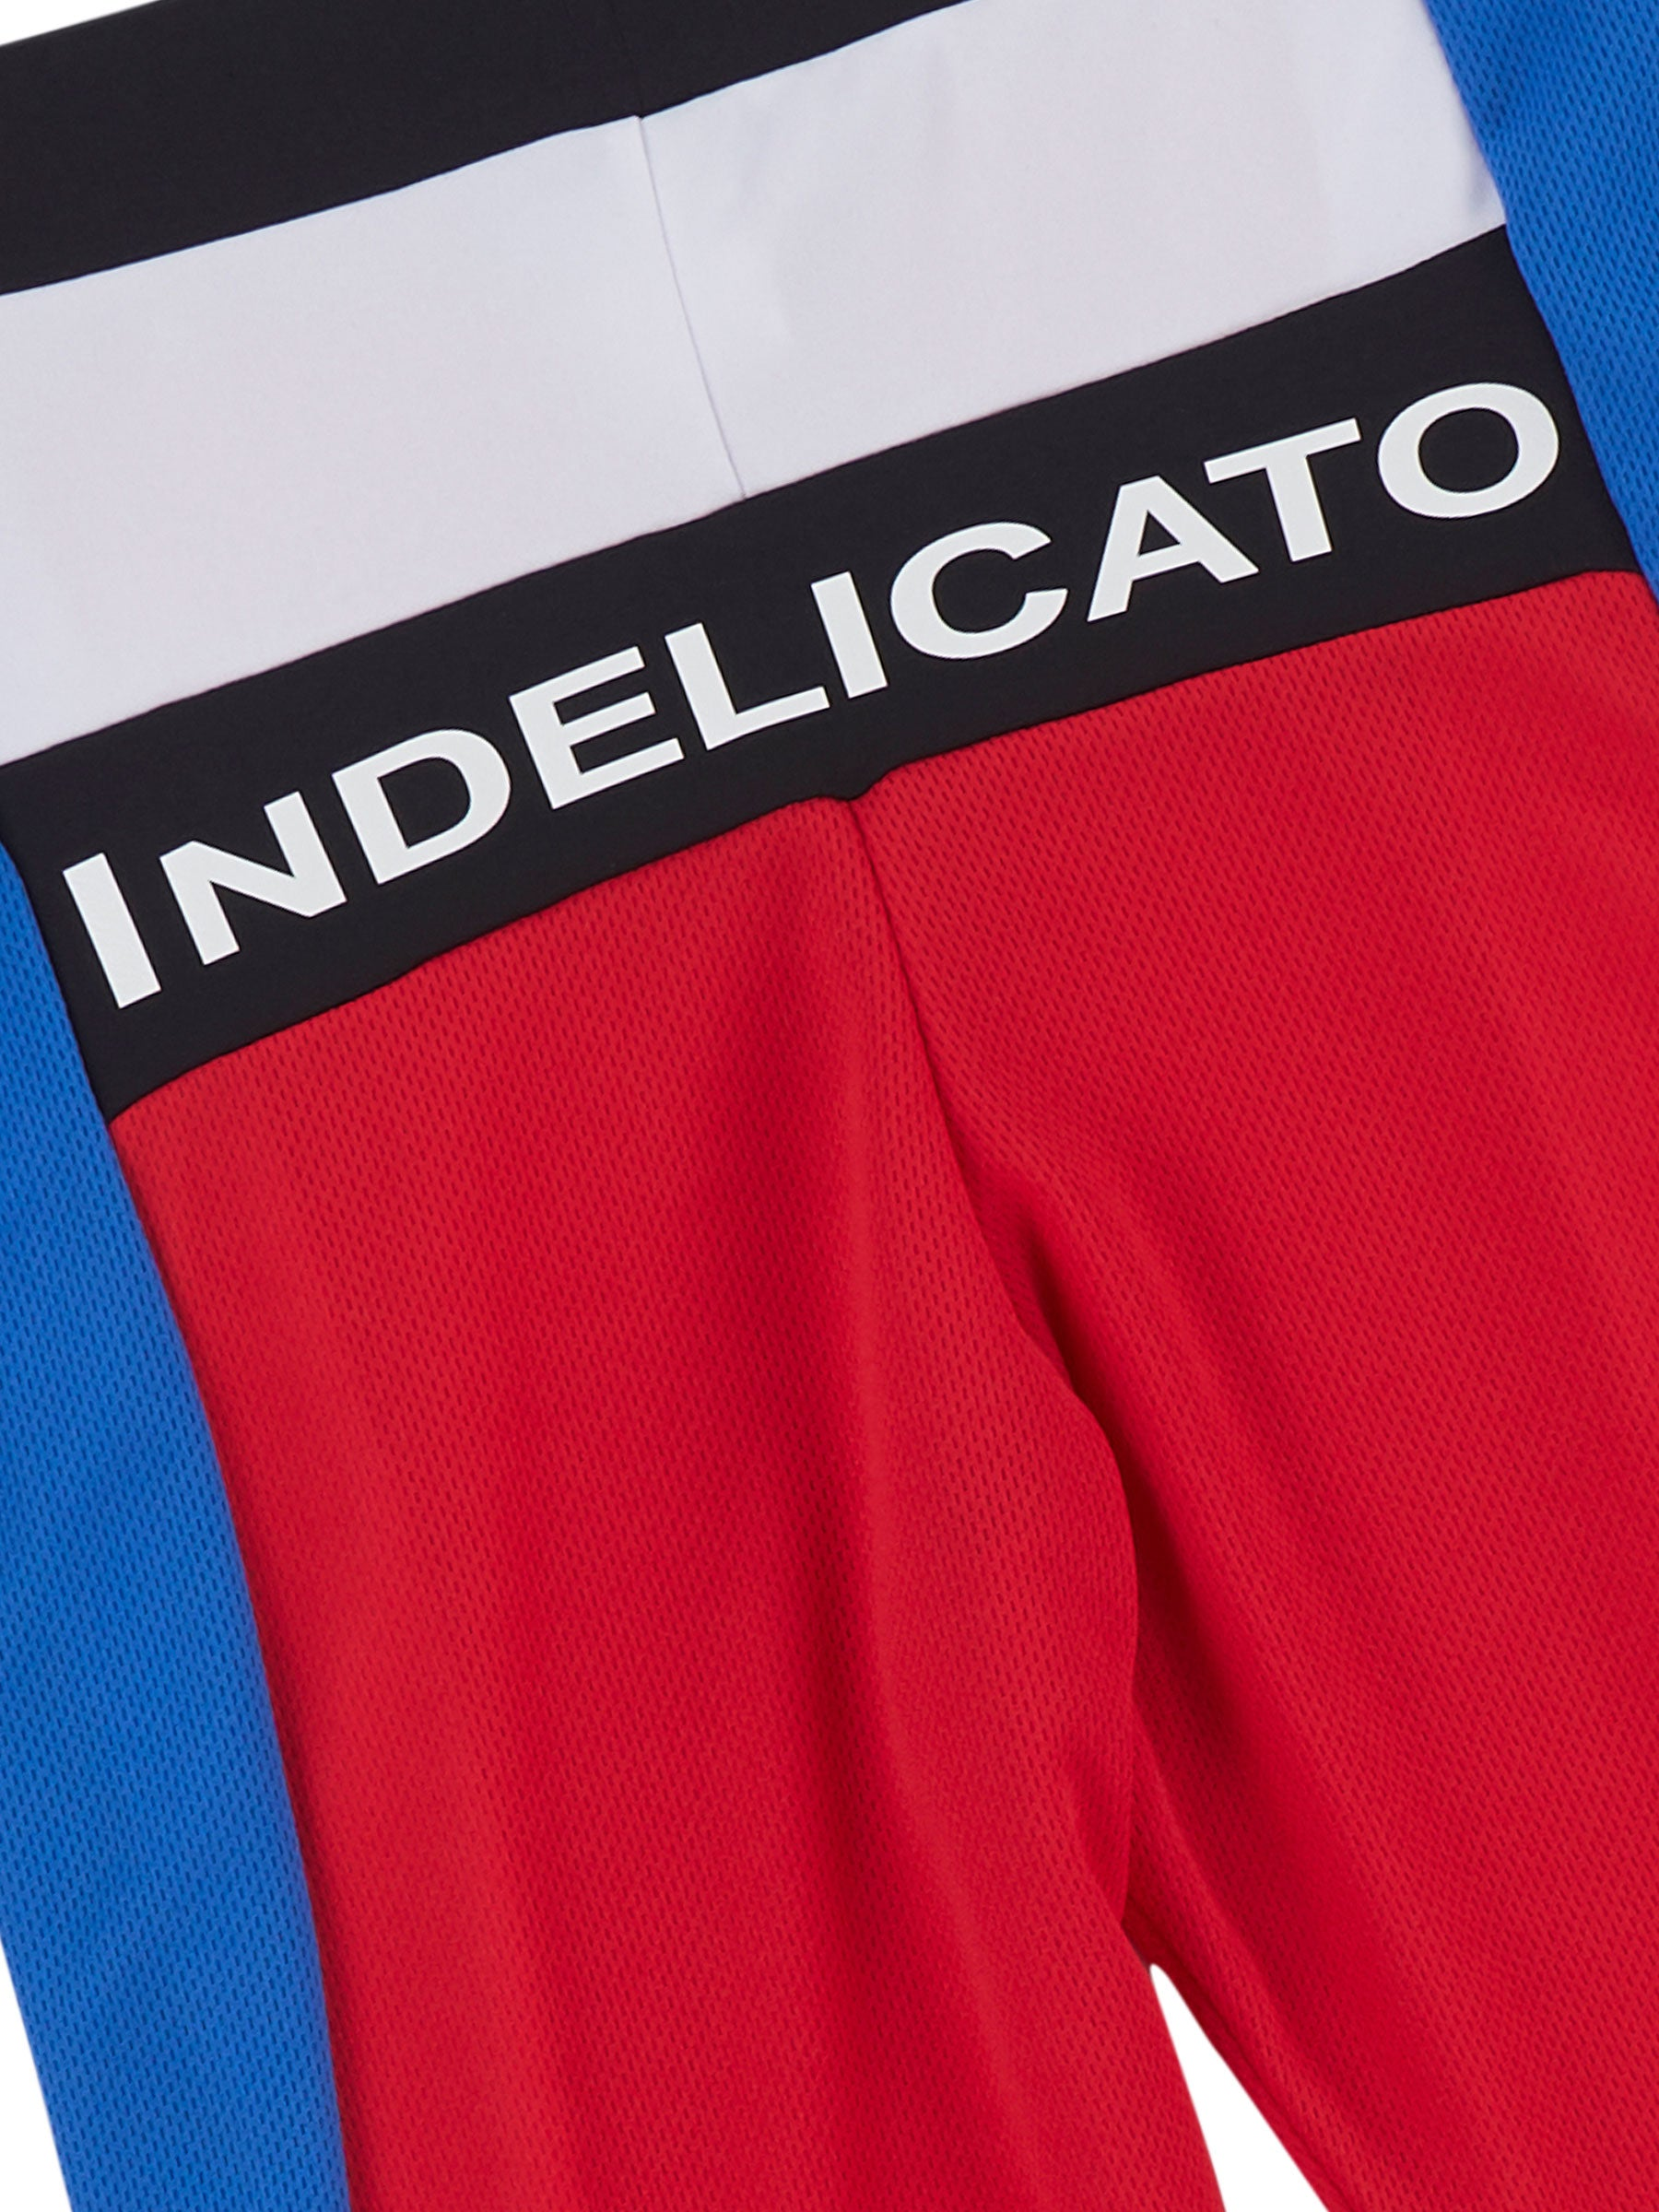 odd92 Nicola Indelicato Cycling Shorts Fall/Winter 2019 Menswear - 5